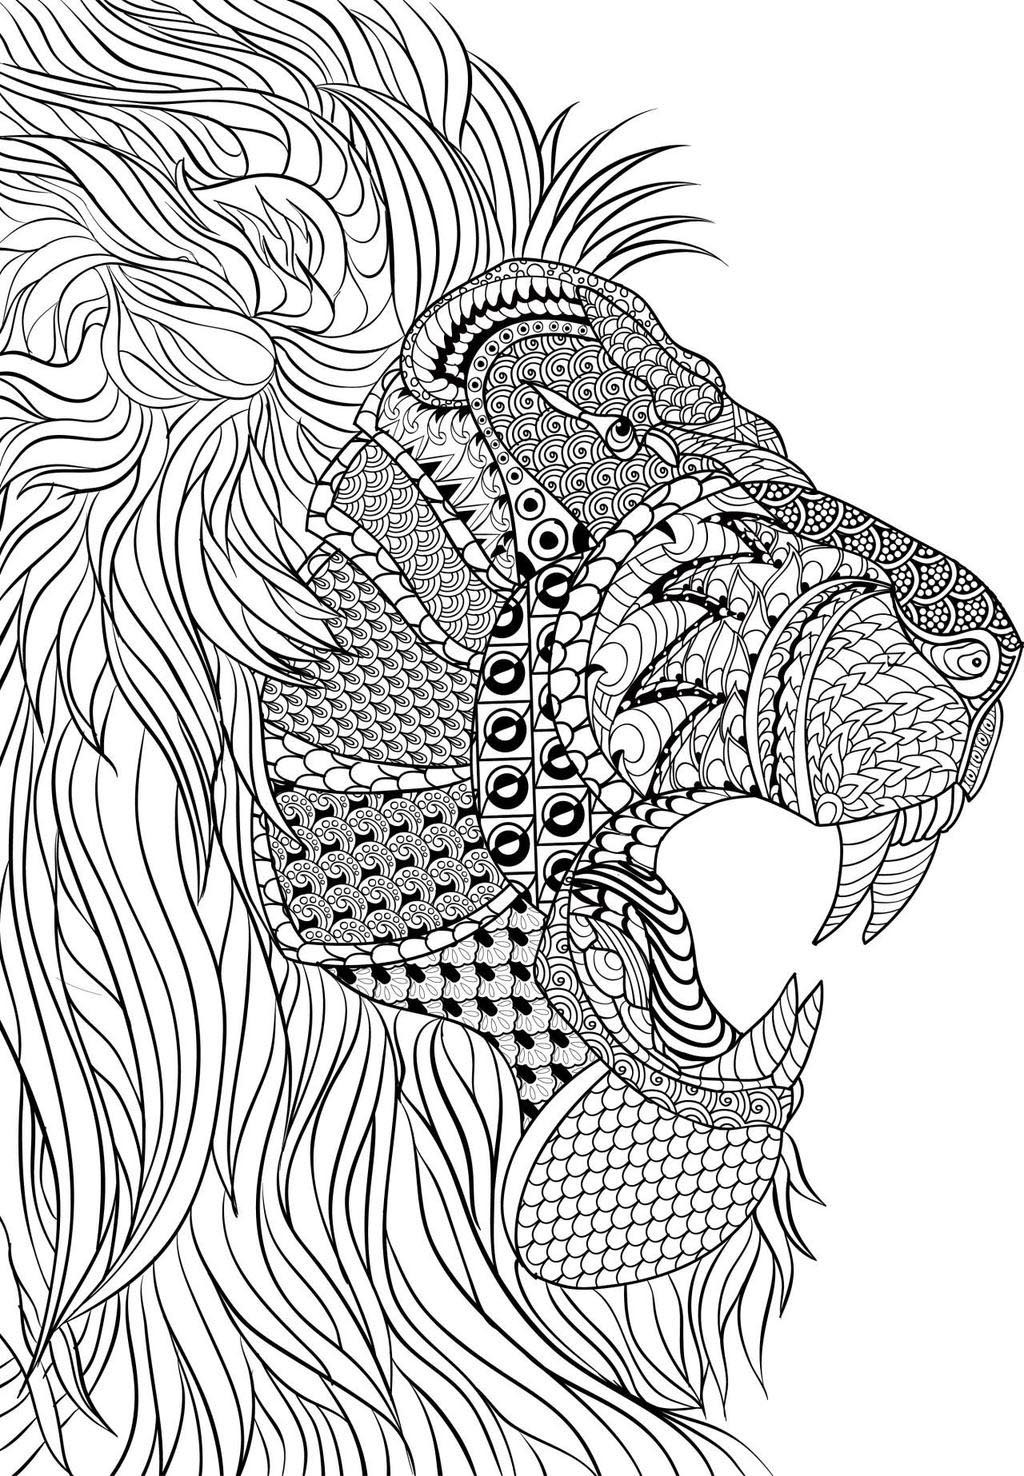 Best ideas about Mandala Animal Coloring Sheets For Girls . Save or Pin Animal Mandala Coloring Pages Beautiful This for Girls Now.